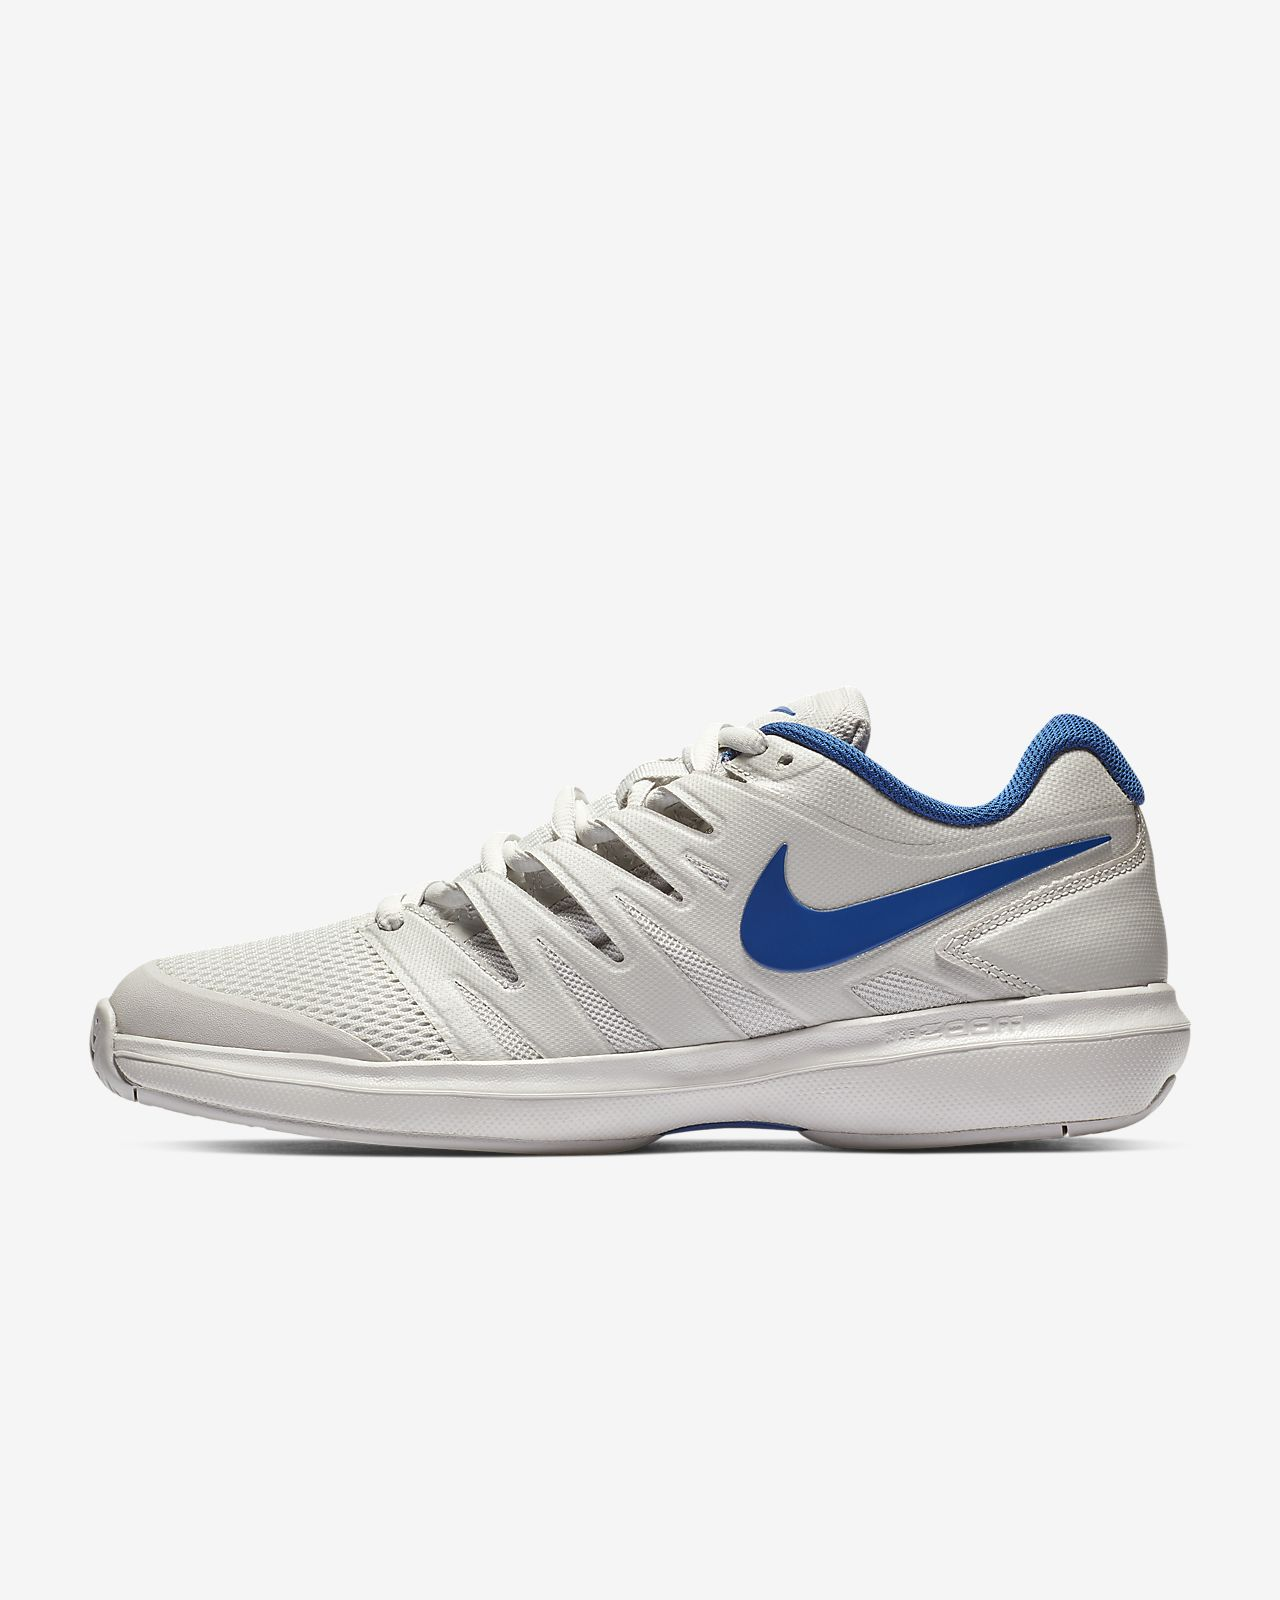 2169aa7ae03 NikeCourt Air Zoom Prestige Men s Hard Court Tennis Shoe. Nike.com